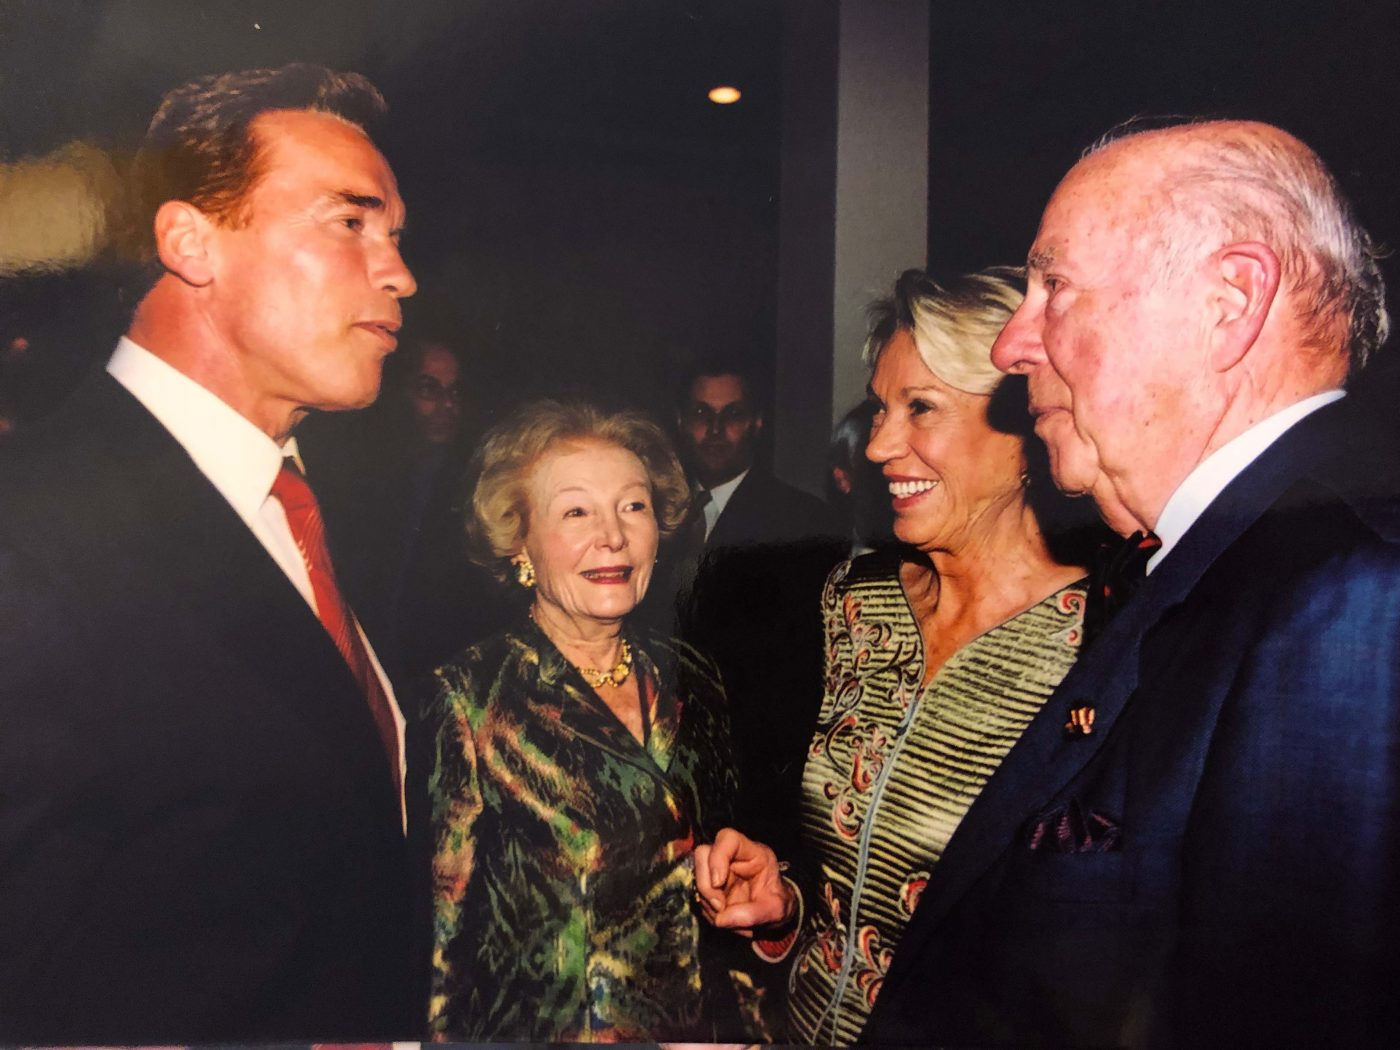 George Shultz, Leonore Annenberg and others.